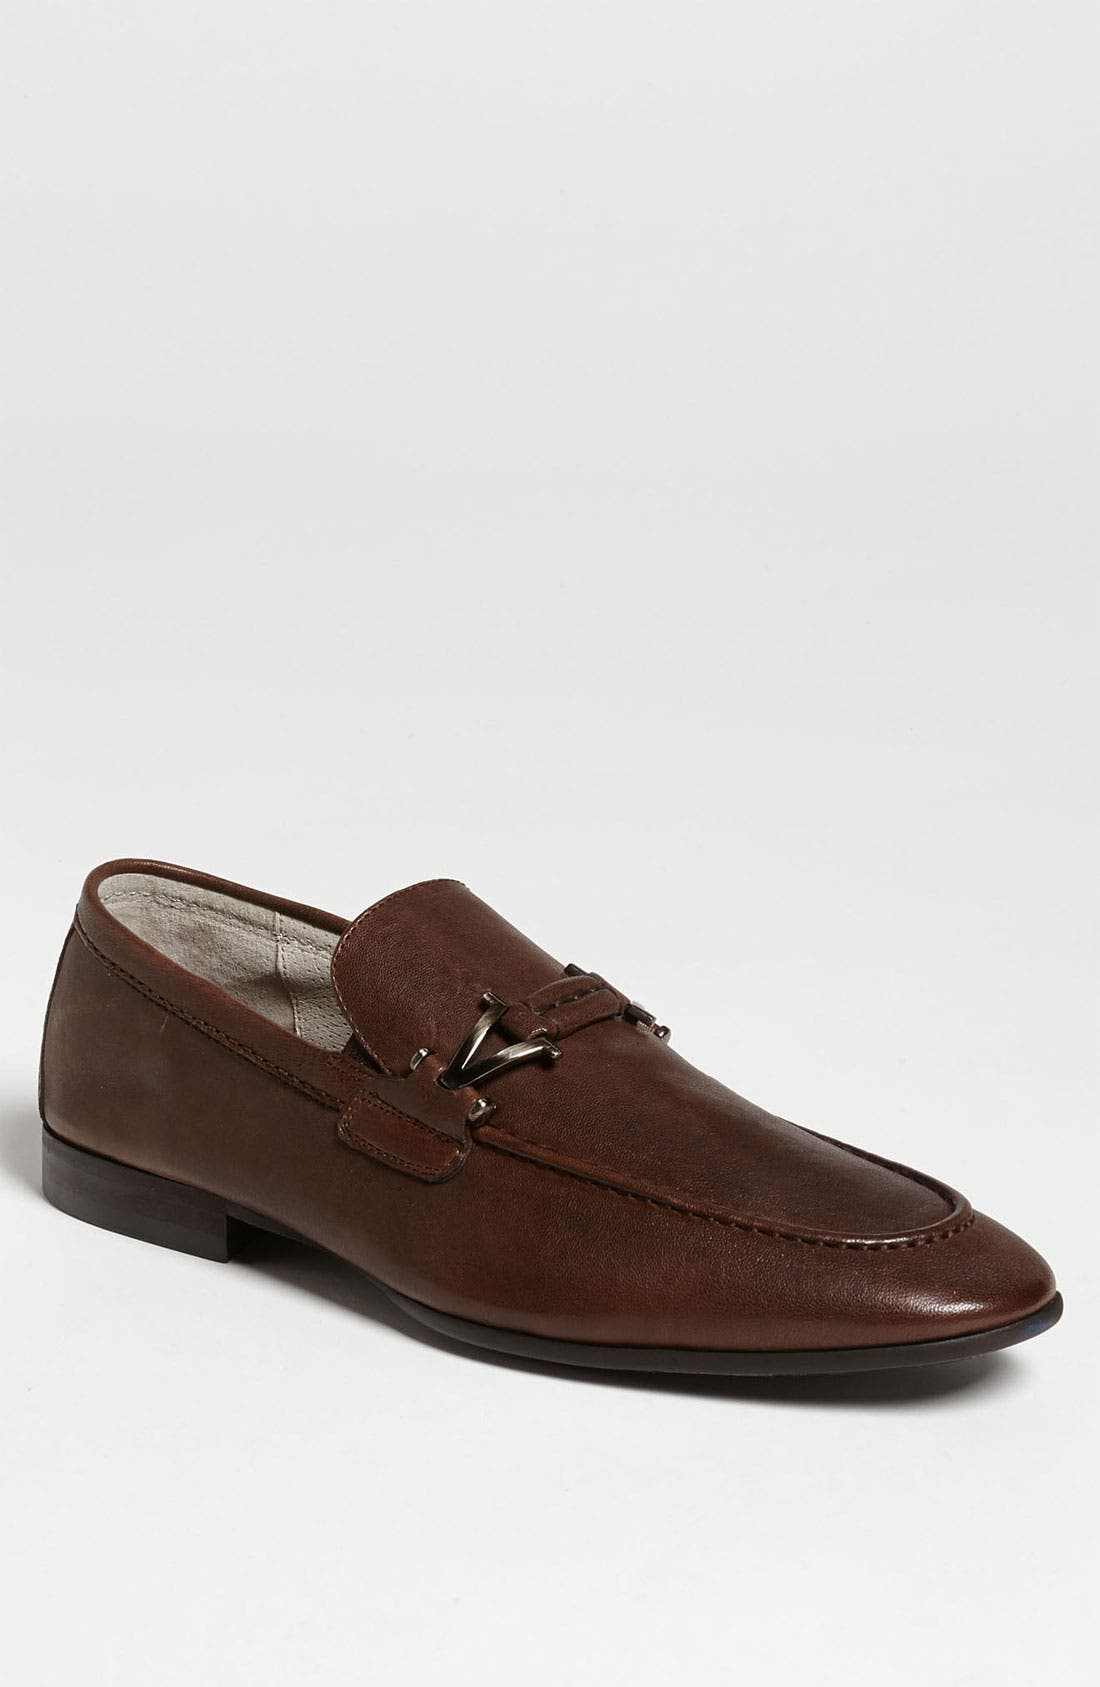 Main Image - Vince Camuto 'Castell' Leather Bit Loafer